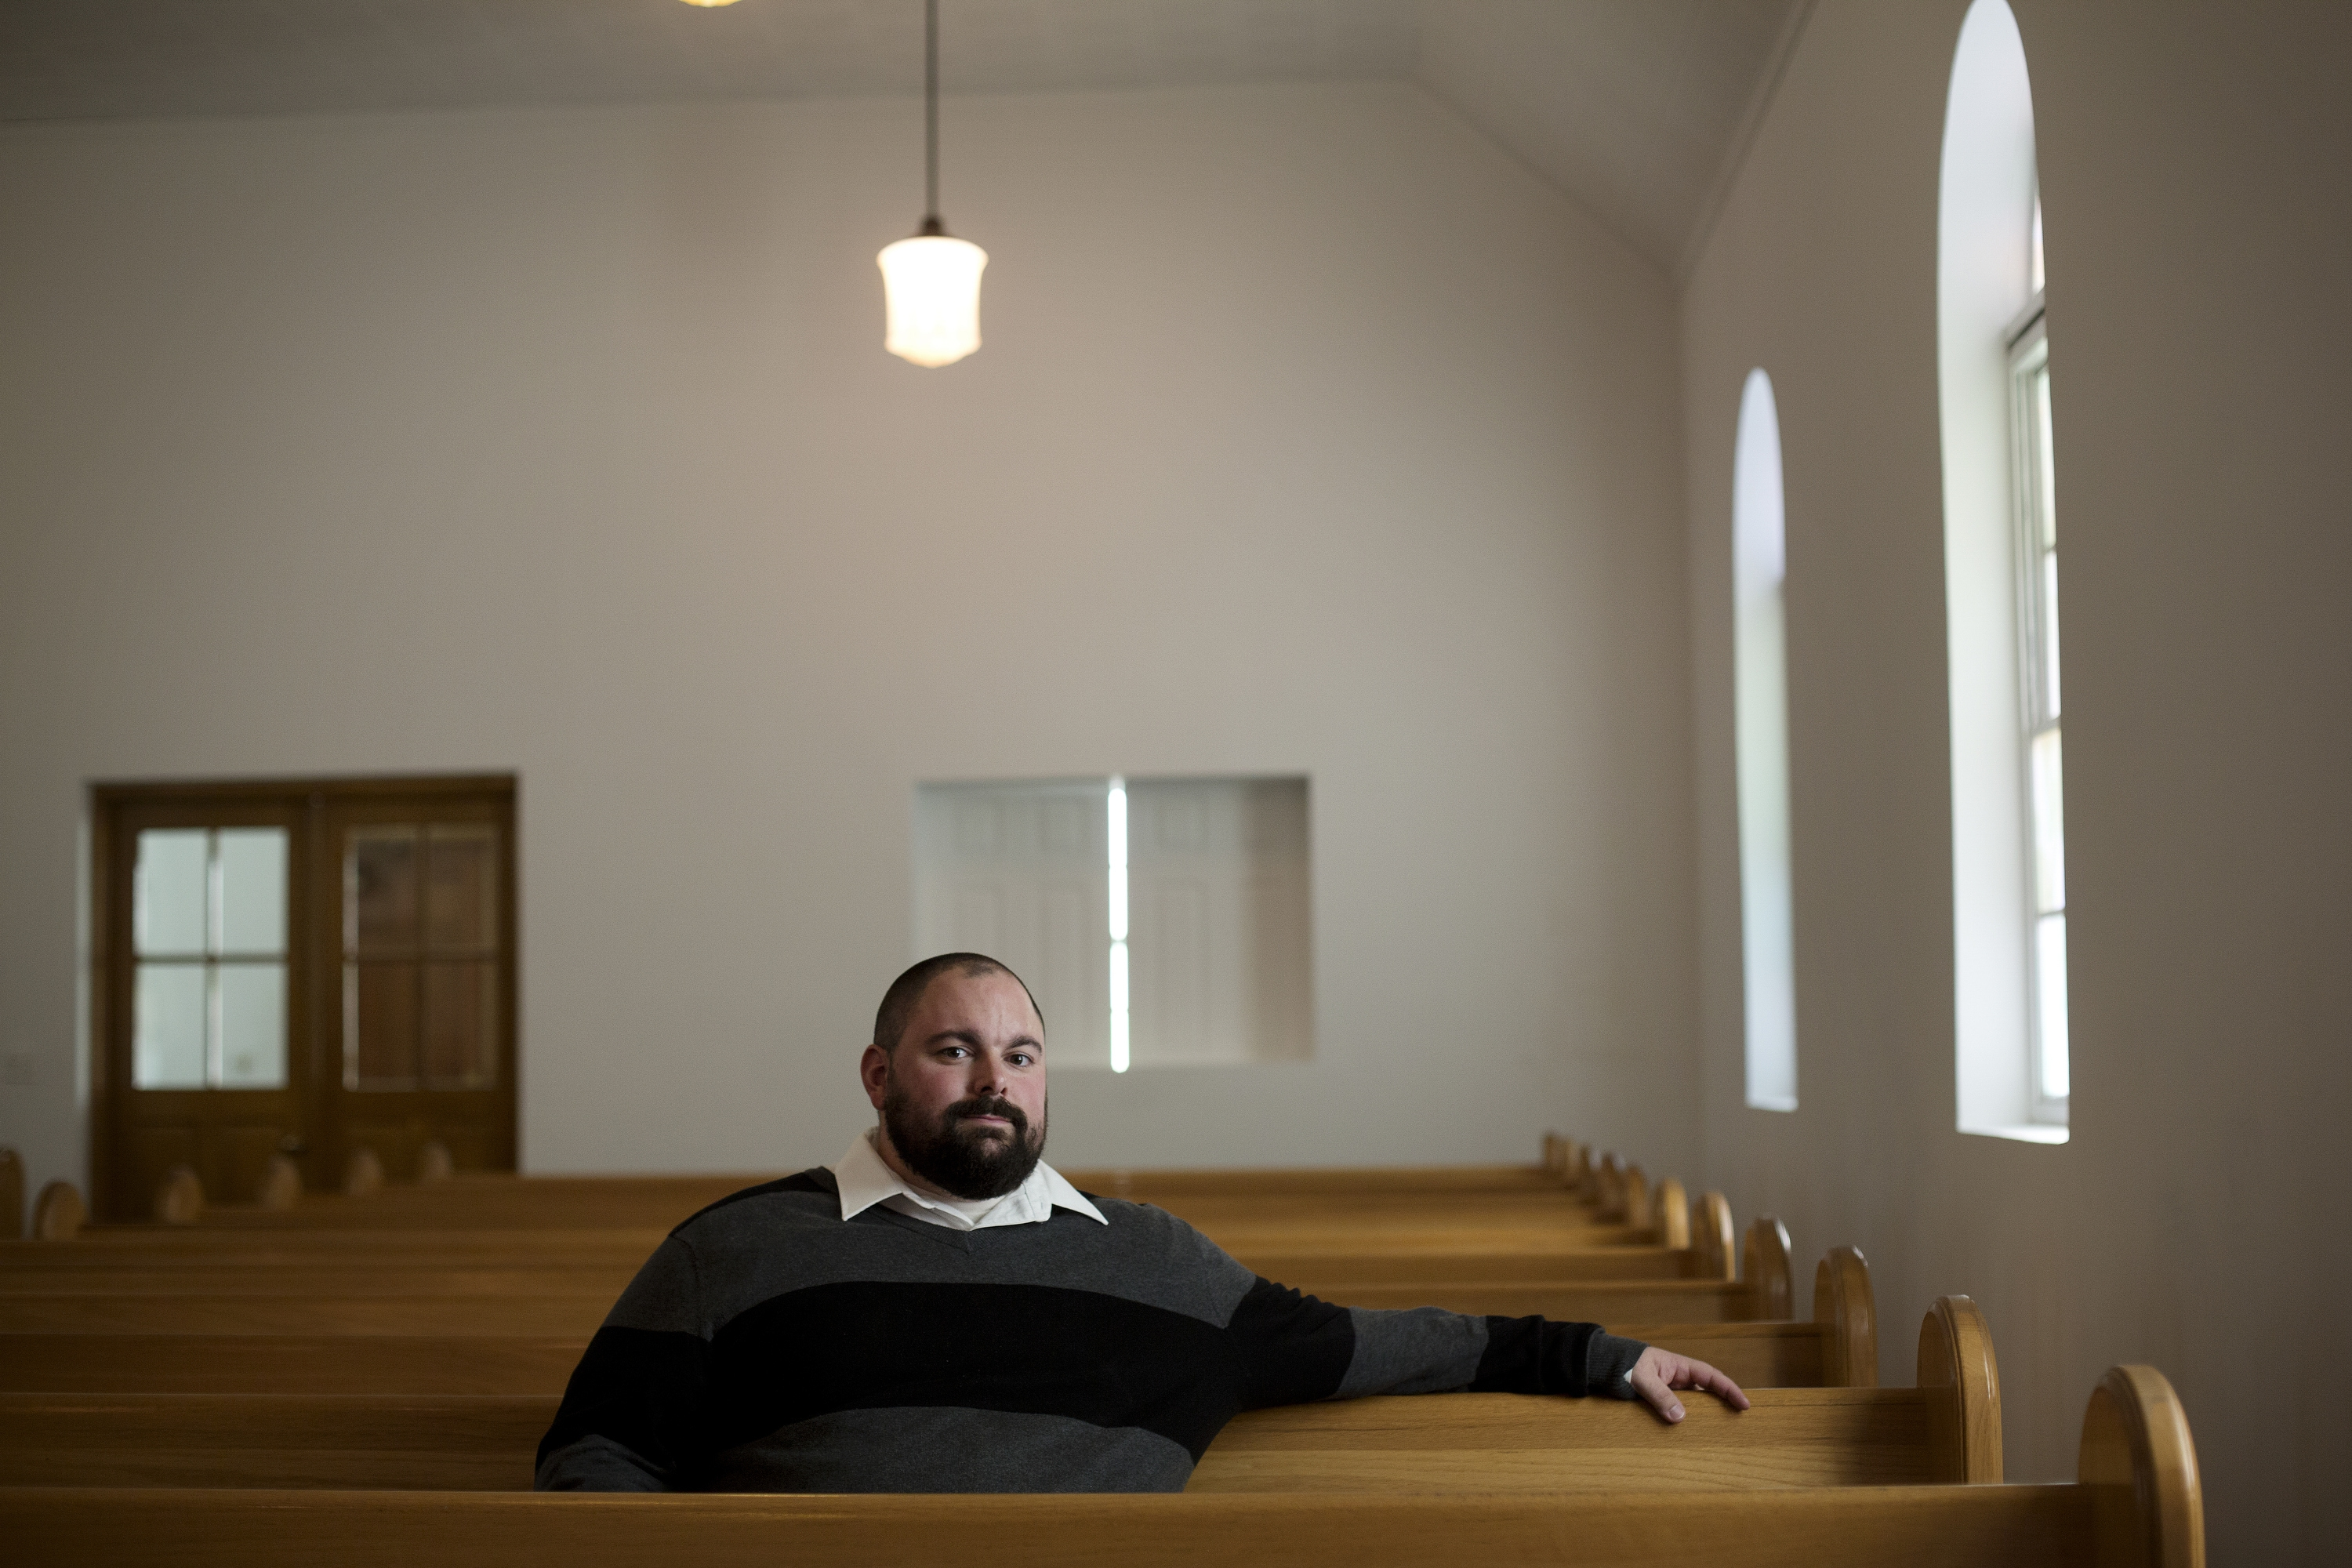 Matt Brogli, a Southern Baptist pastor at Eagle Springs Baptist Church in Eagle Springs, N.C., has become the unofficial mental health counselor for the community.